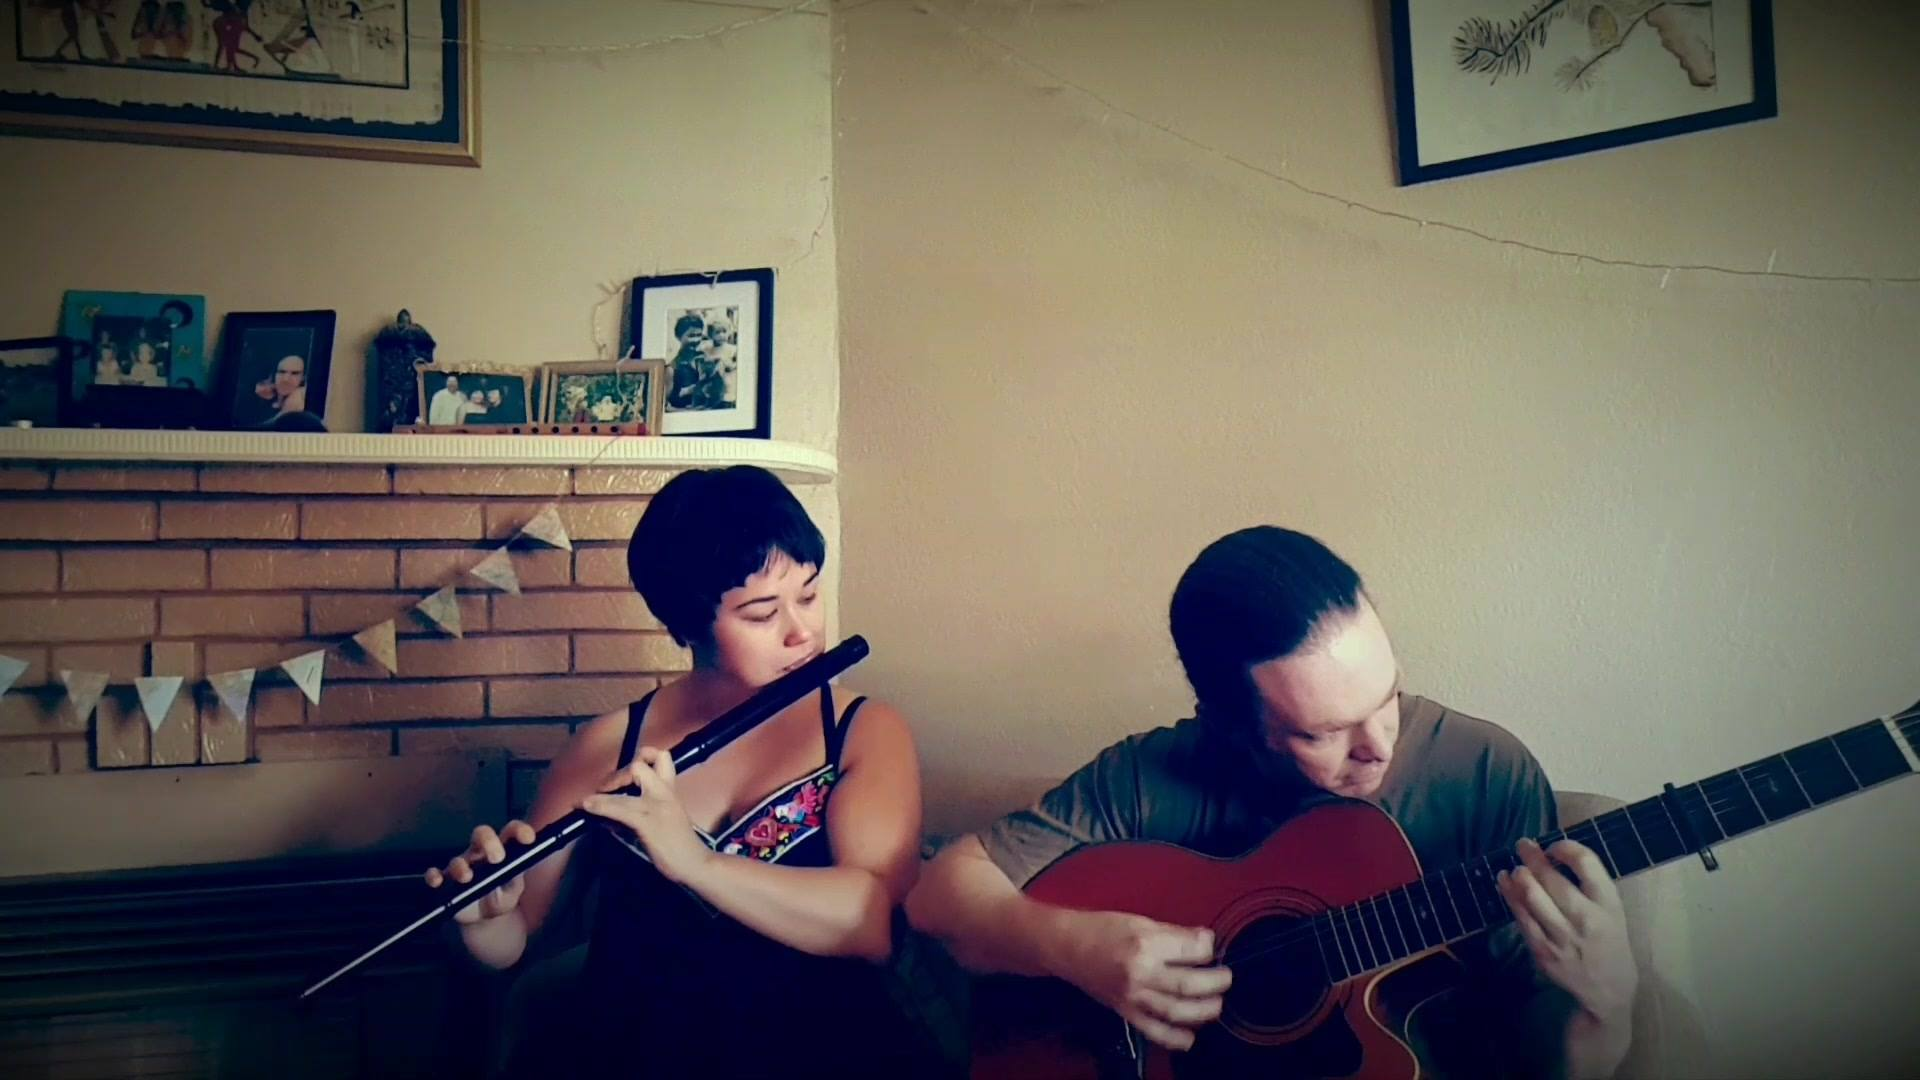 Perfect weather for Yarraville Festival tomorrow! Catch Meredith & Timothy on Sunday at the Ballarat Stage at 12pm. Here's a preview of one of our more sunny tunes 'Merri Creek'. Hope to see you there!